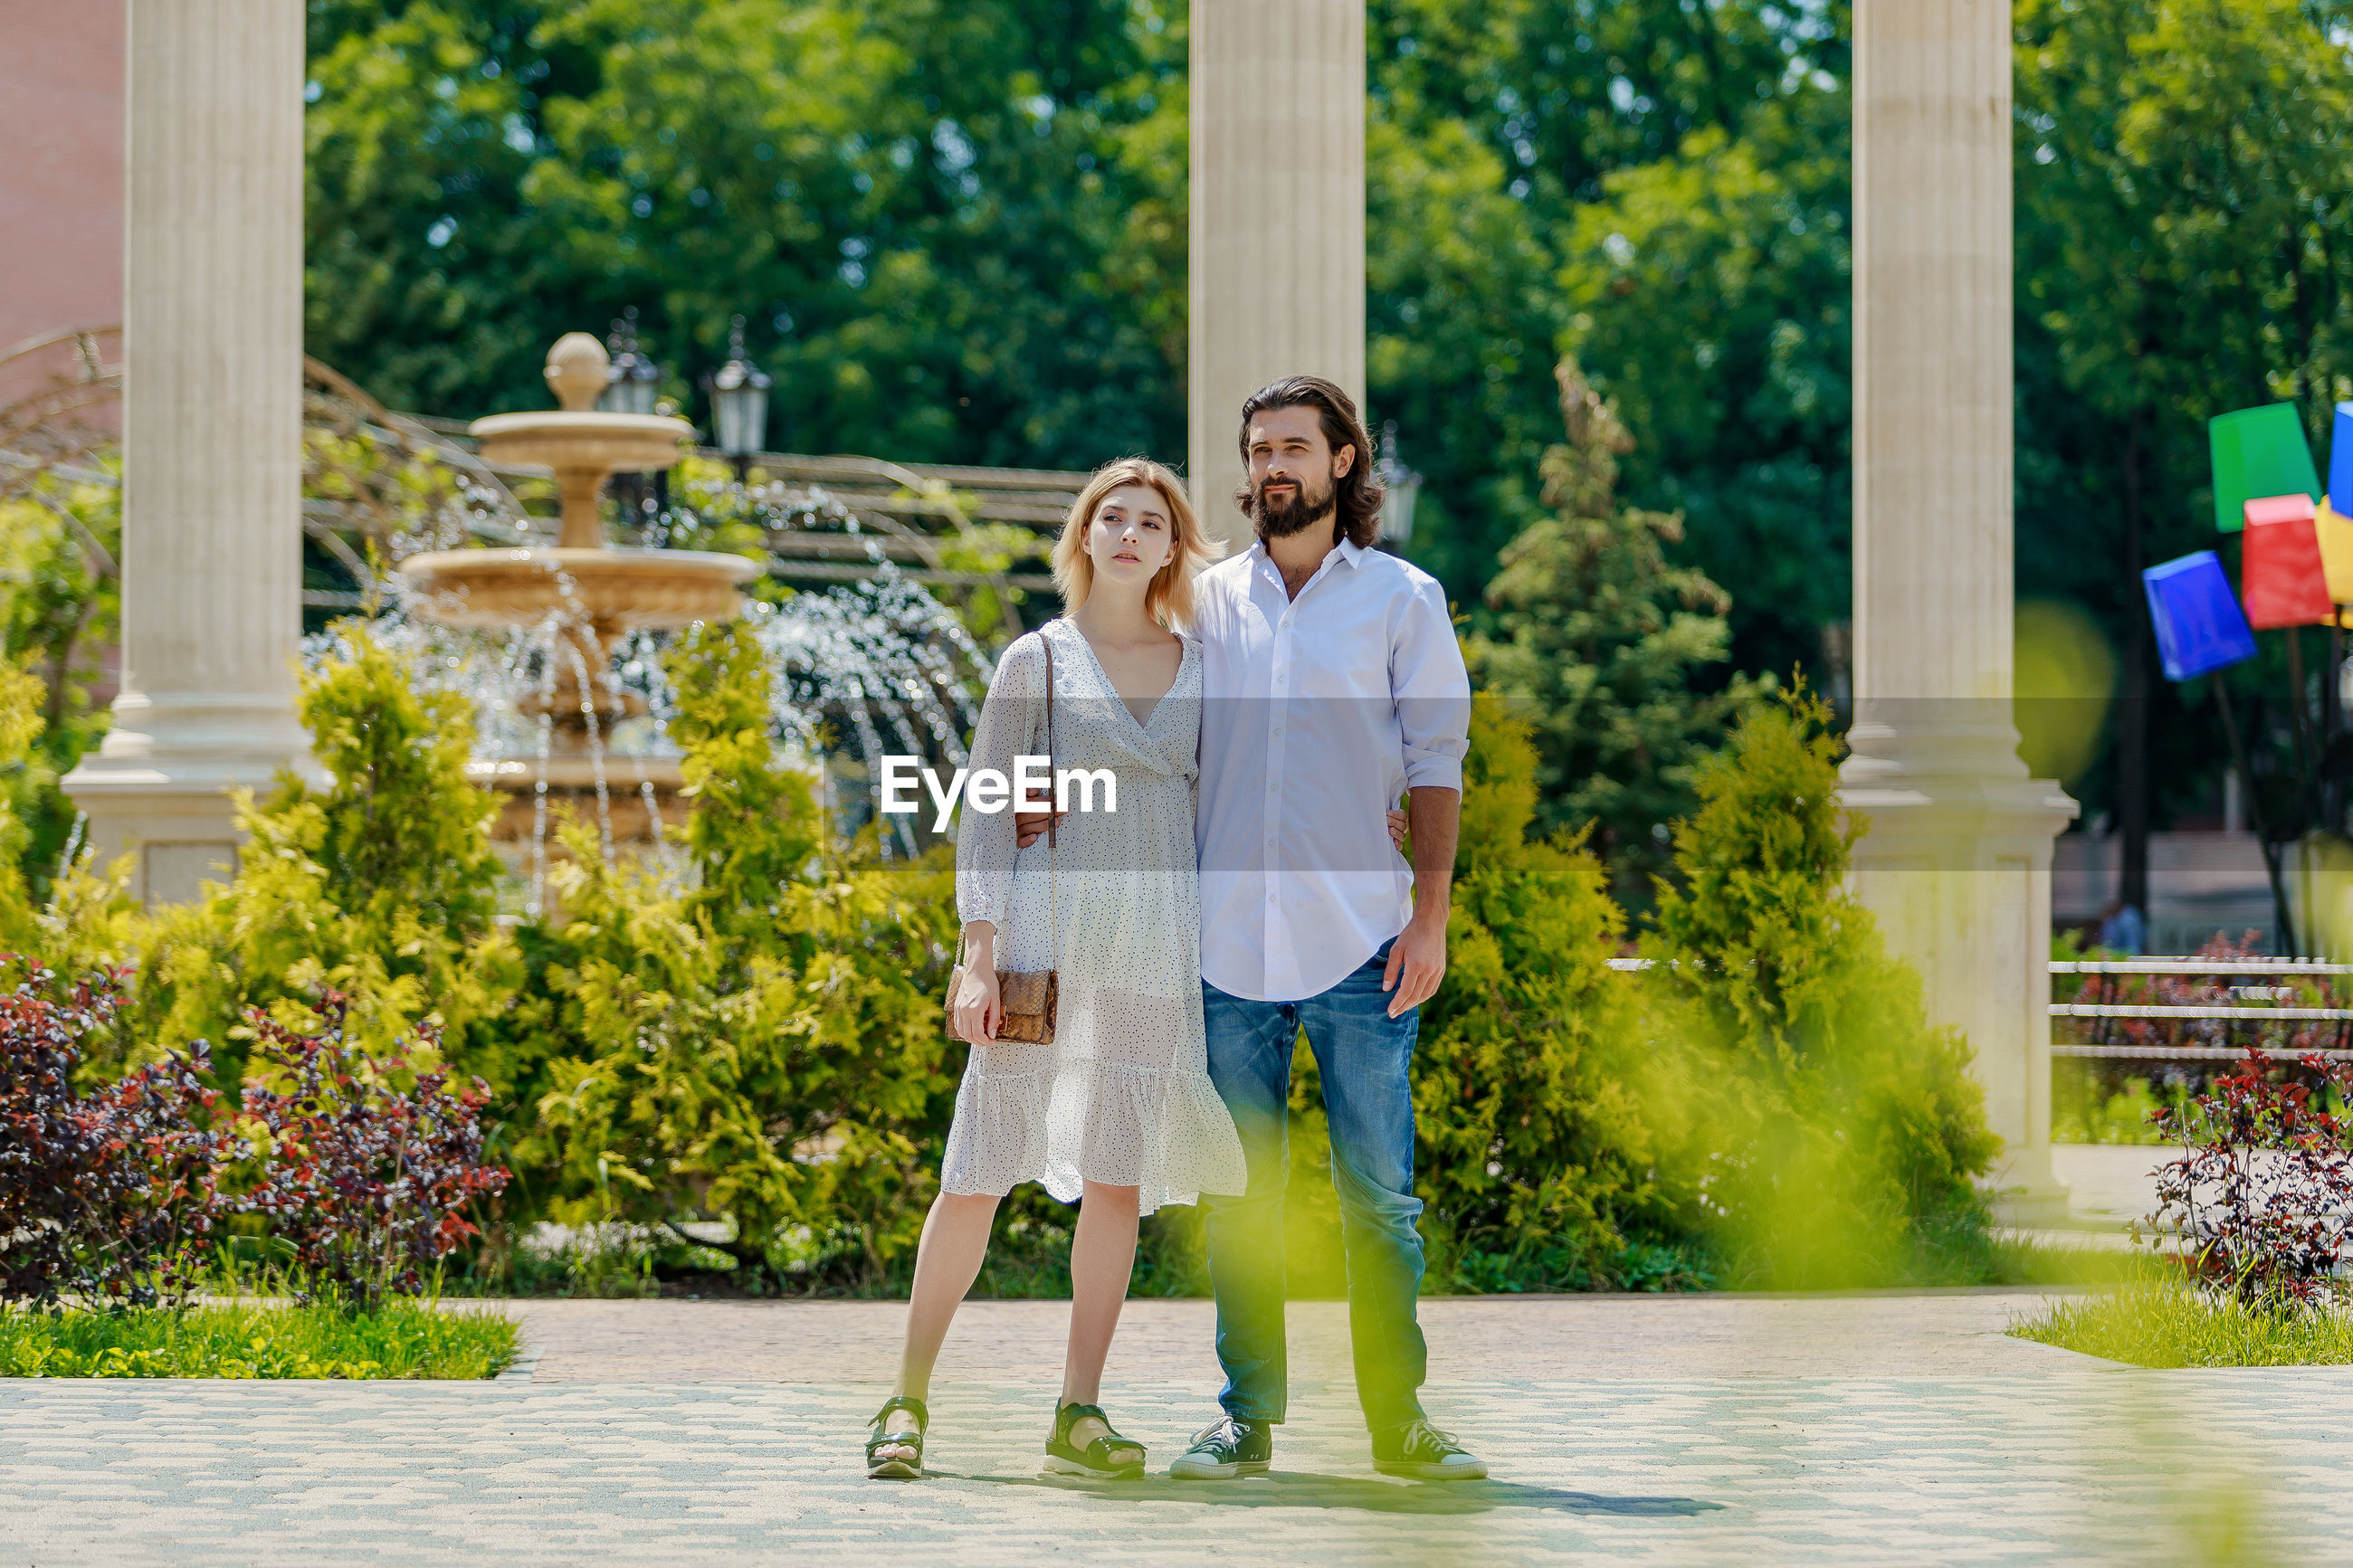 Portrait of smiling couple standing outdoors